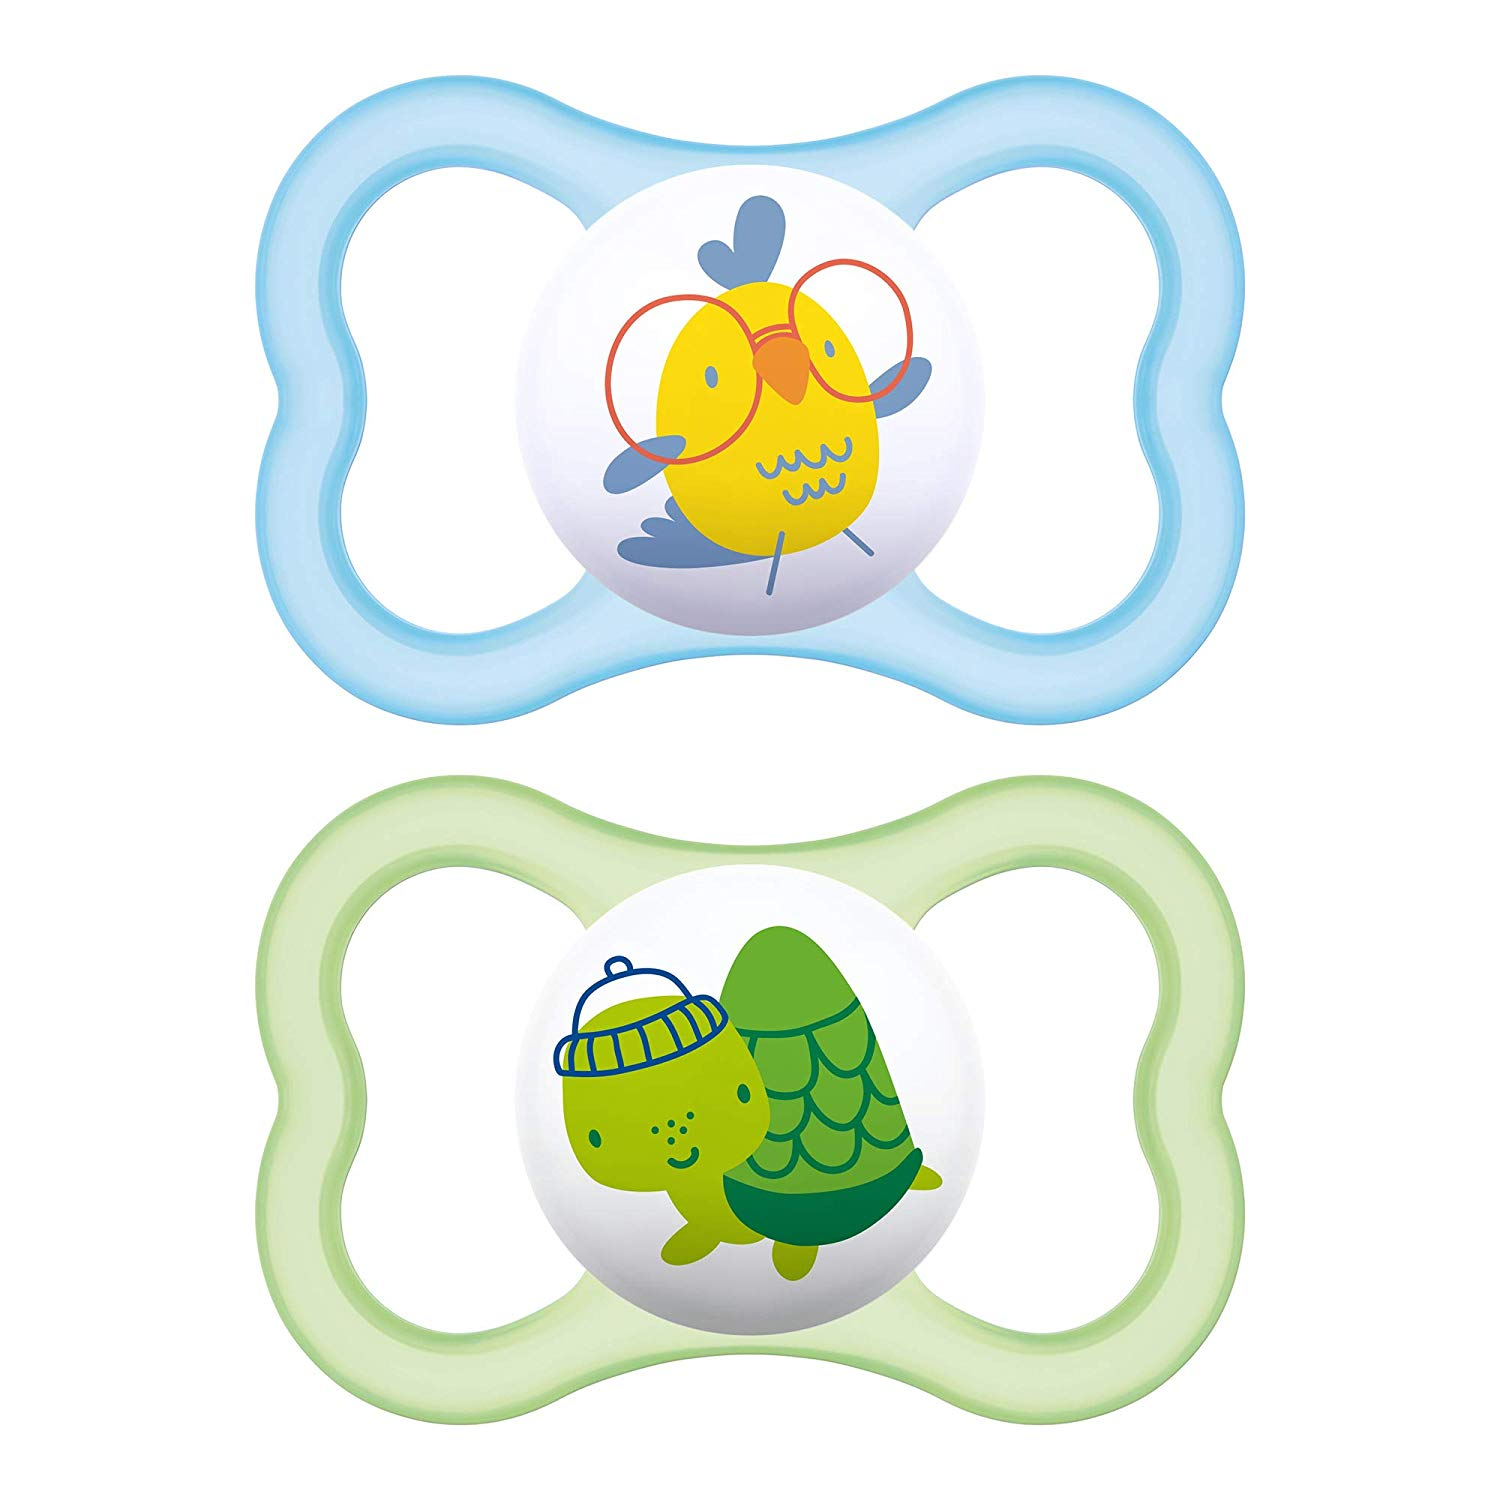 MAM Air Pacifiers (2 pack), MAM Sensitive Skin Pacifier 6+ Months, Best  Pacifier for Breastfed Babies, Baby Boy Pacifiers, Green and Blue.